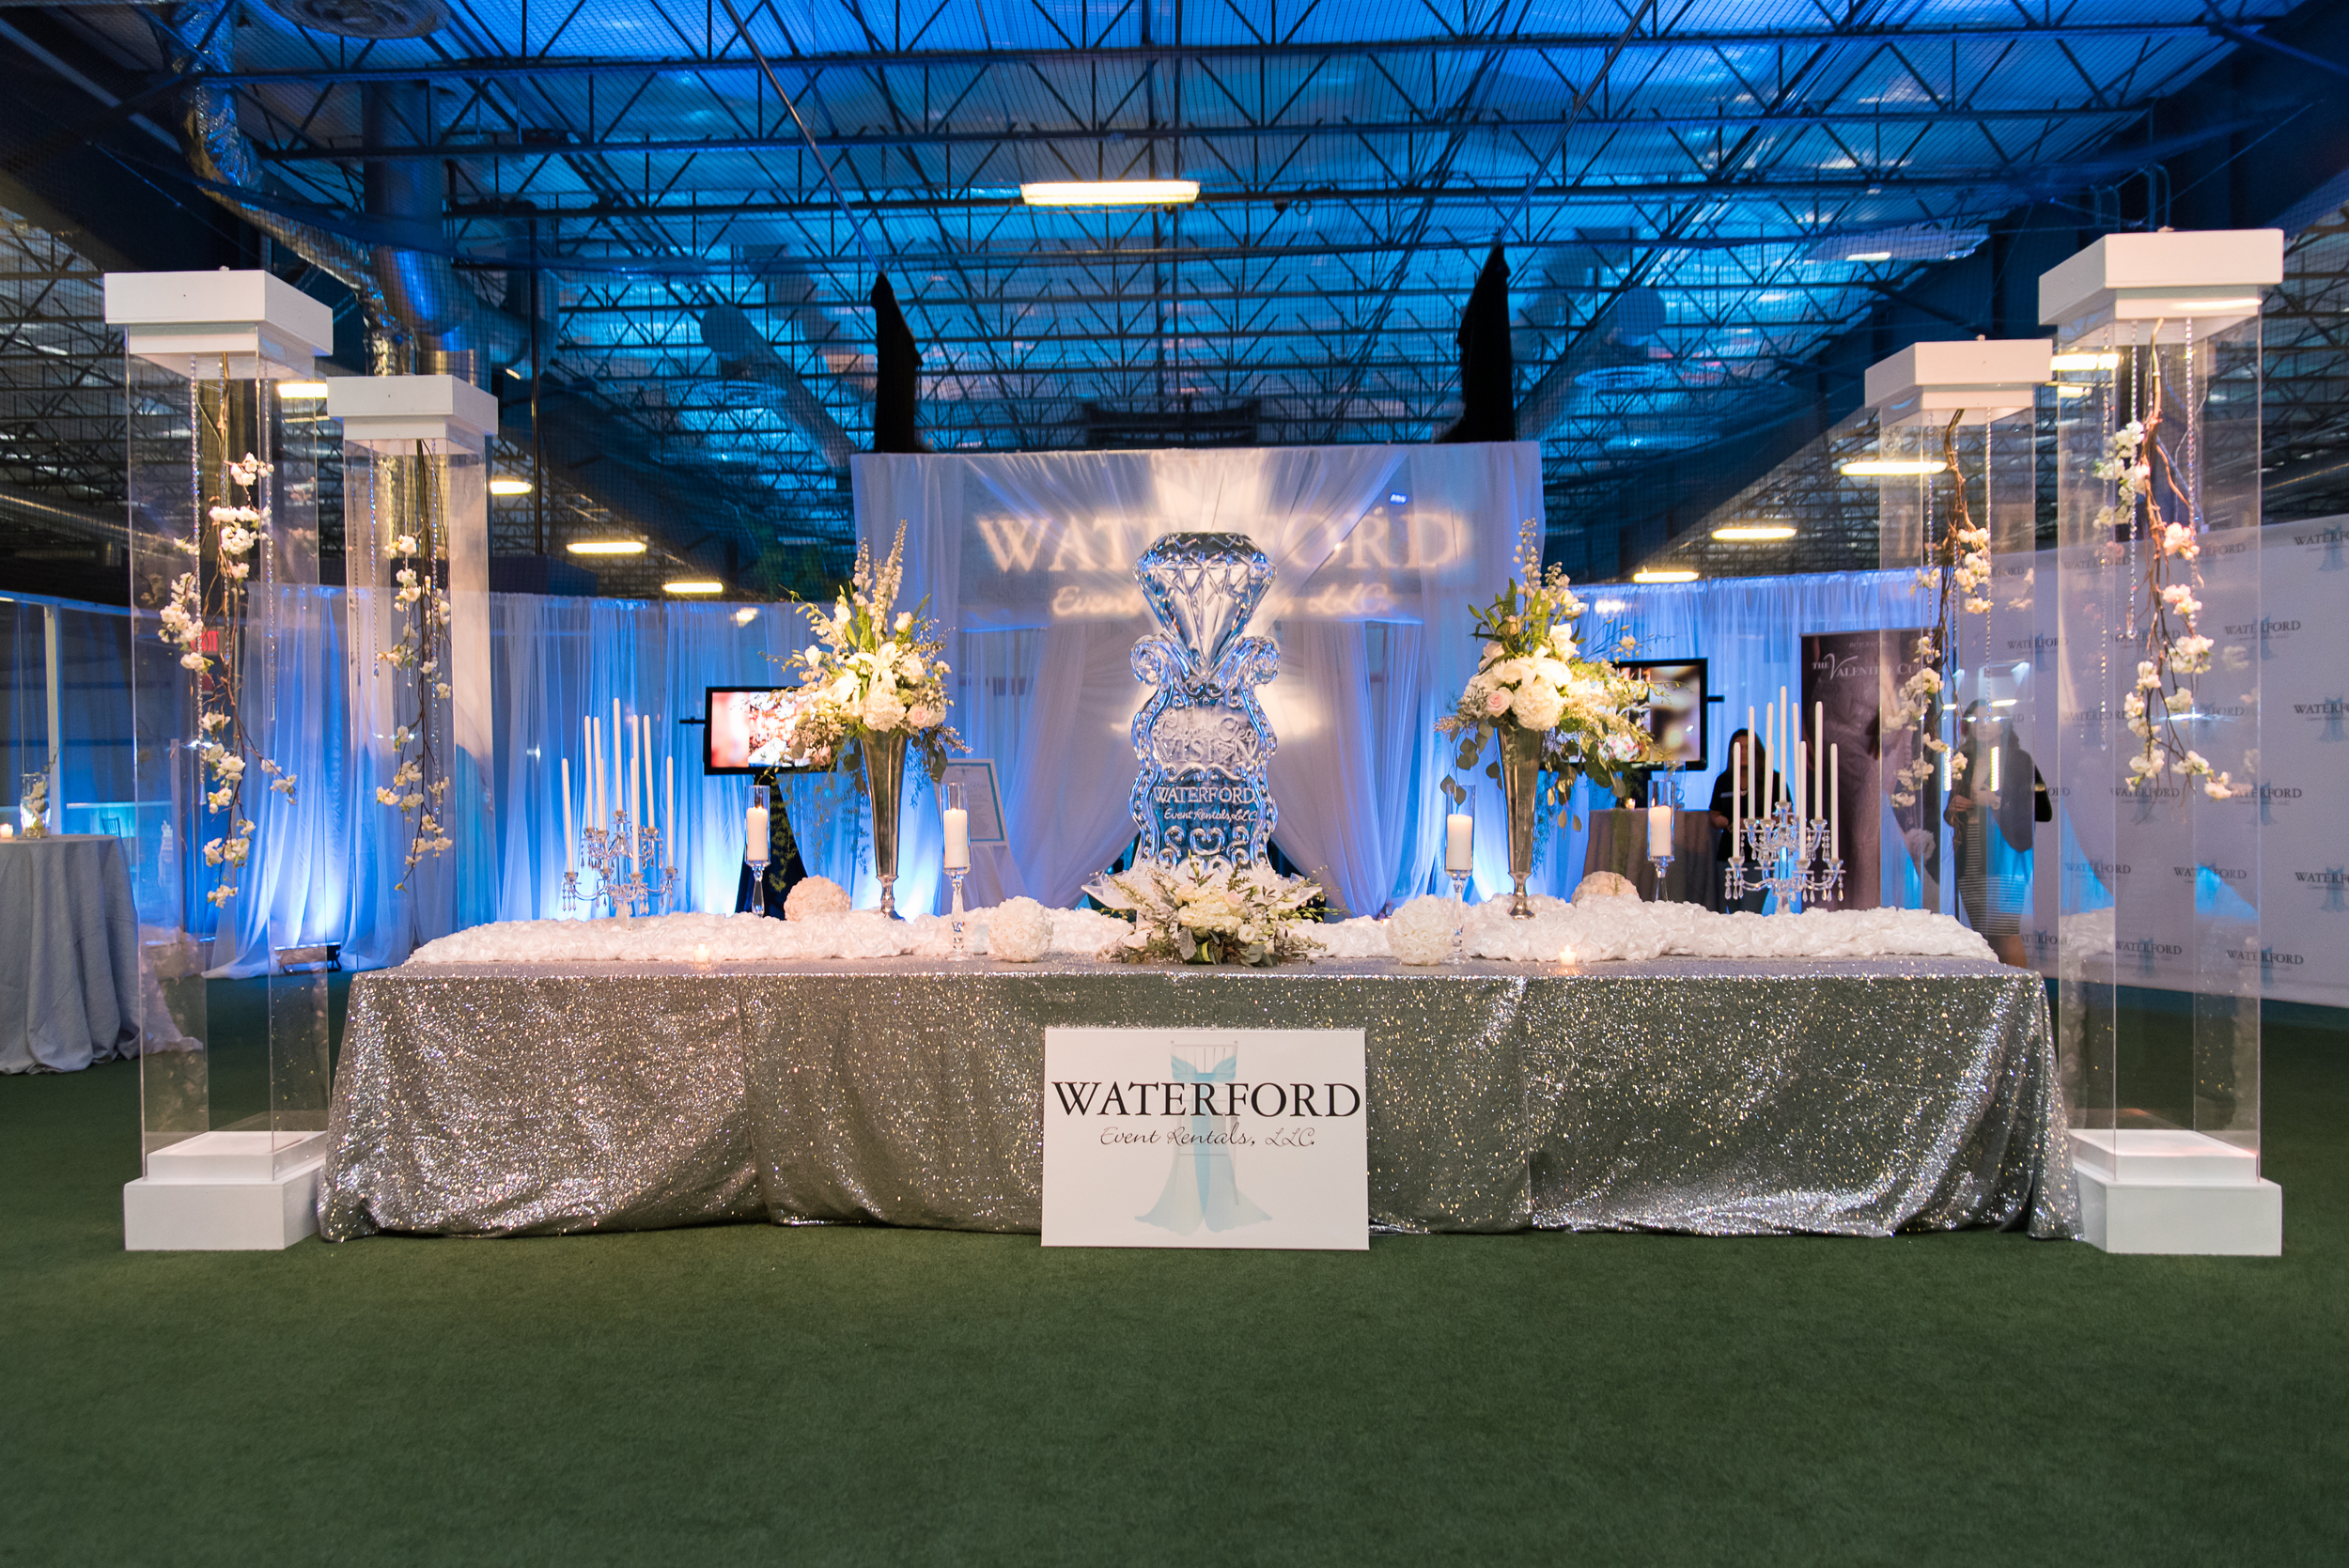 Design and linens by Waterford Event Rentals. Florals and columns by Botanique. Ice sculpture by Ice Art. Uplighting by Blue Steel Lighting Design.